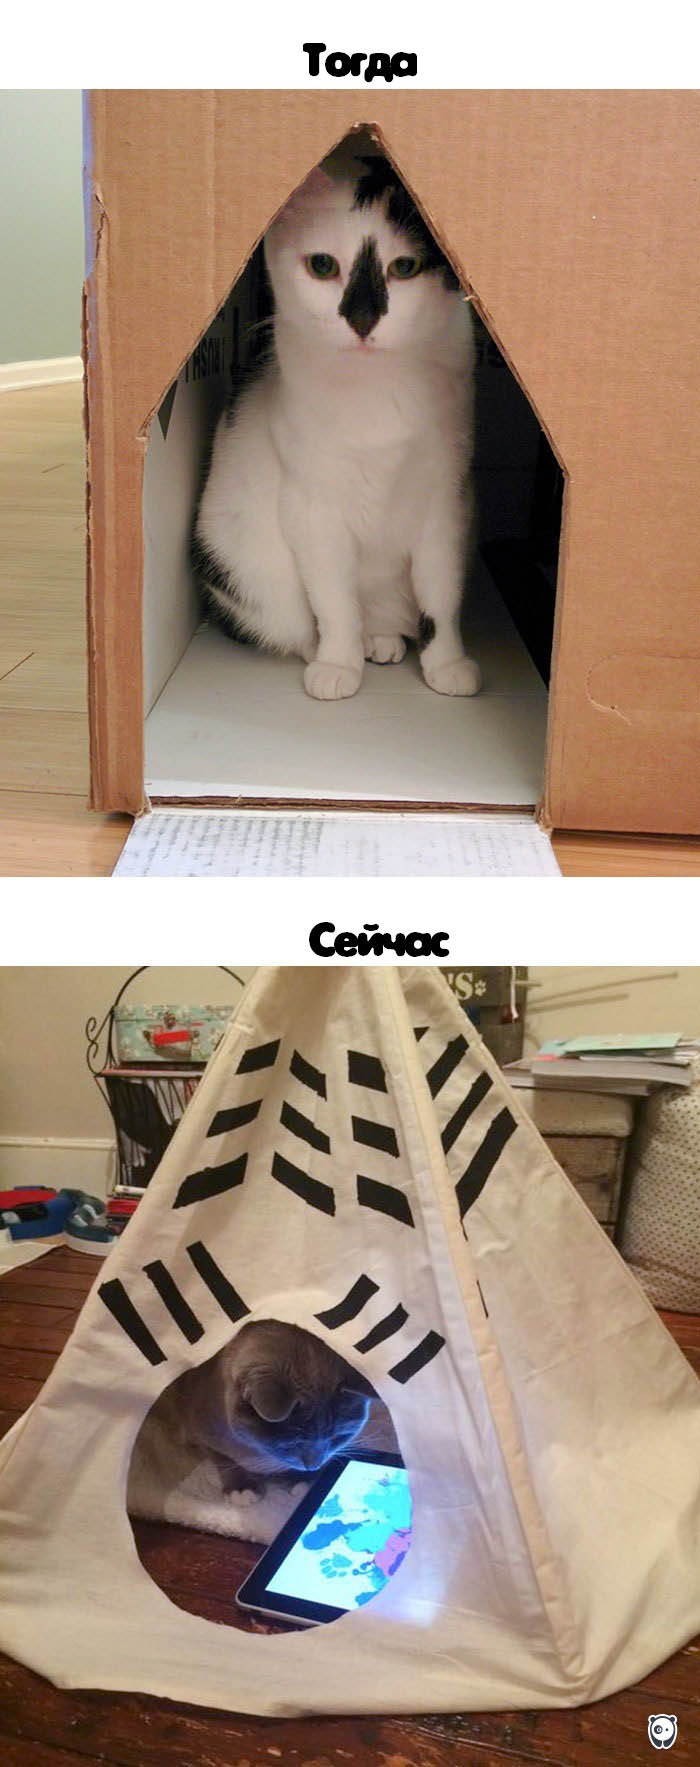 cats-then-now-funny-technology-change-life-vinegret (14)